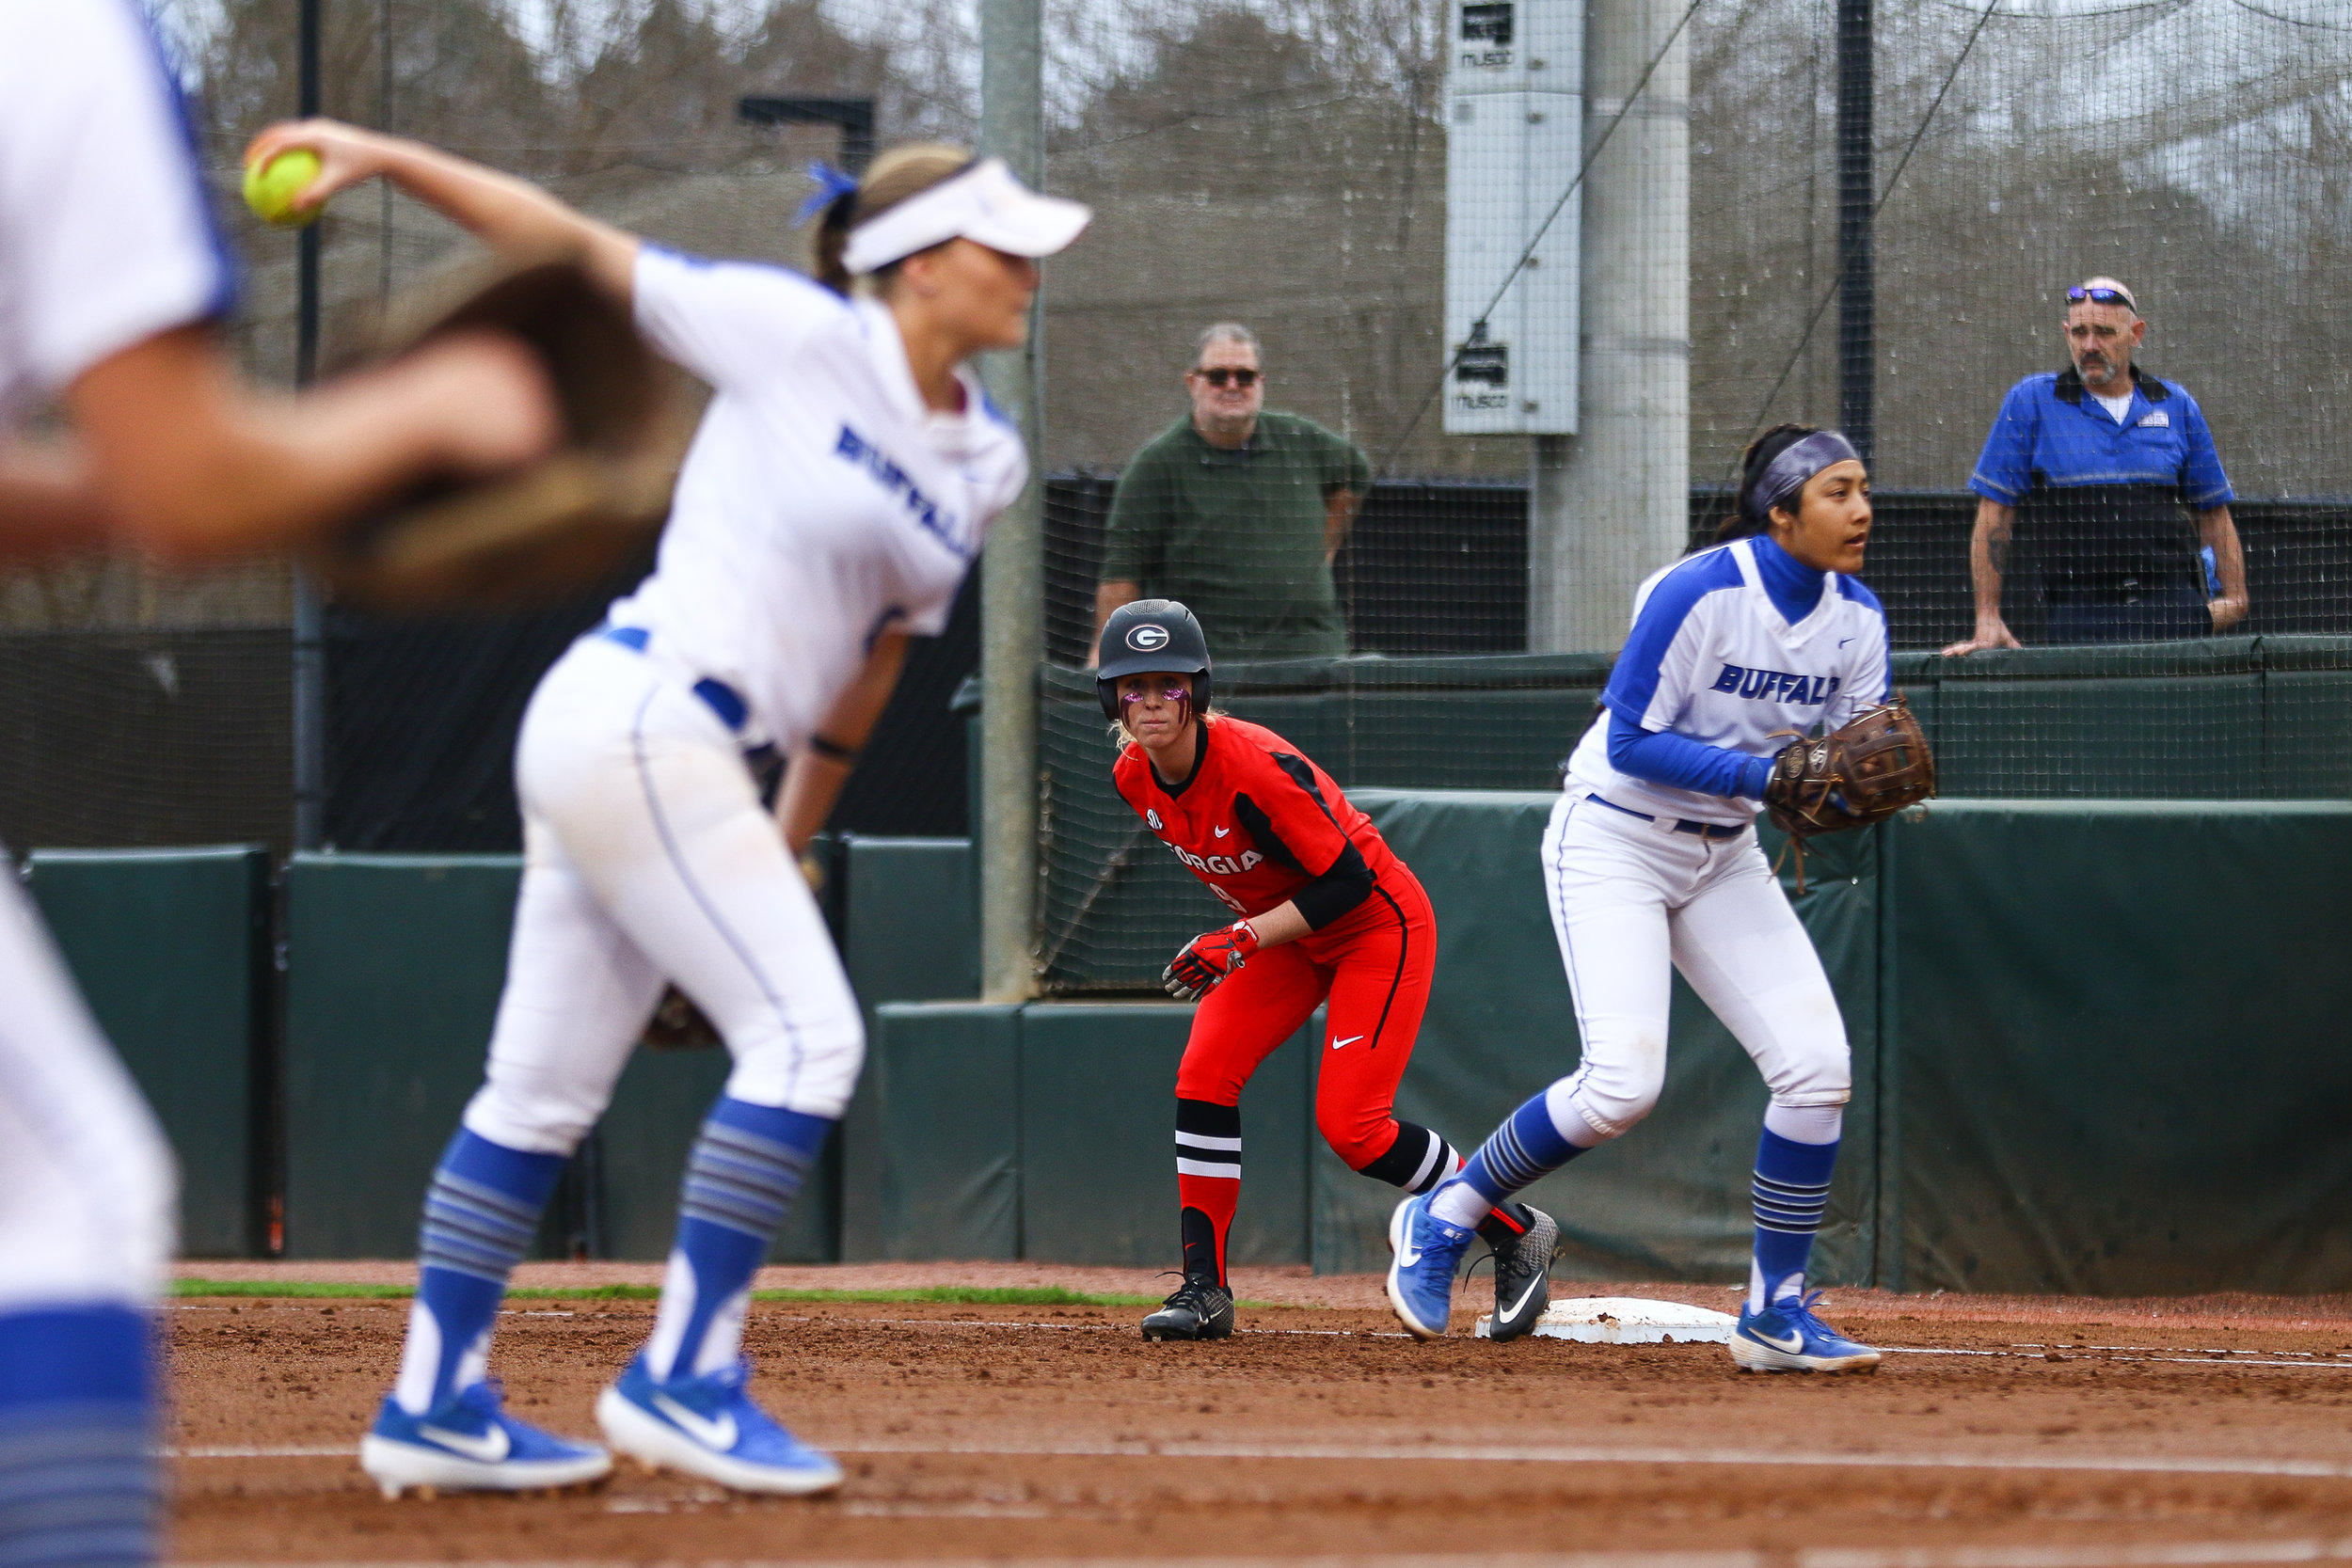 Georgia outfielder Alysen Febrey (9) leads off of first base during Georgia softball's home opener against the University of Buffalo in Athens, Ga., on Thursday, Feb. 14, 2019.